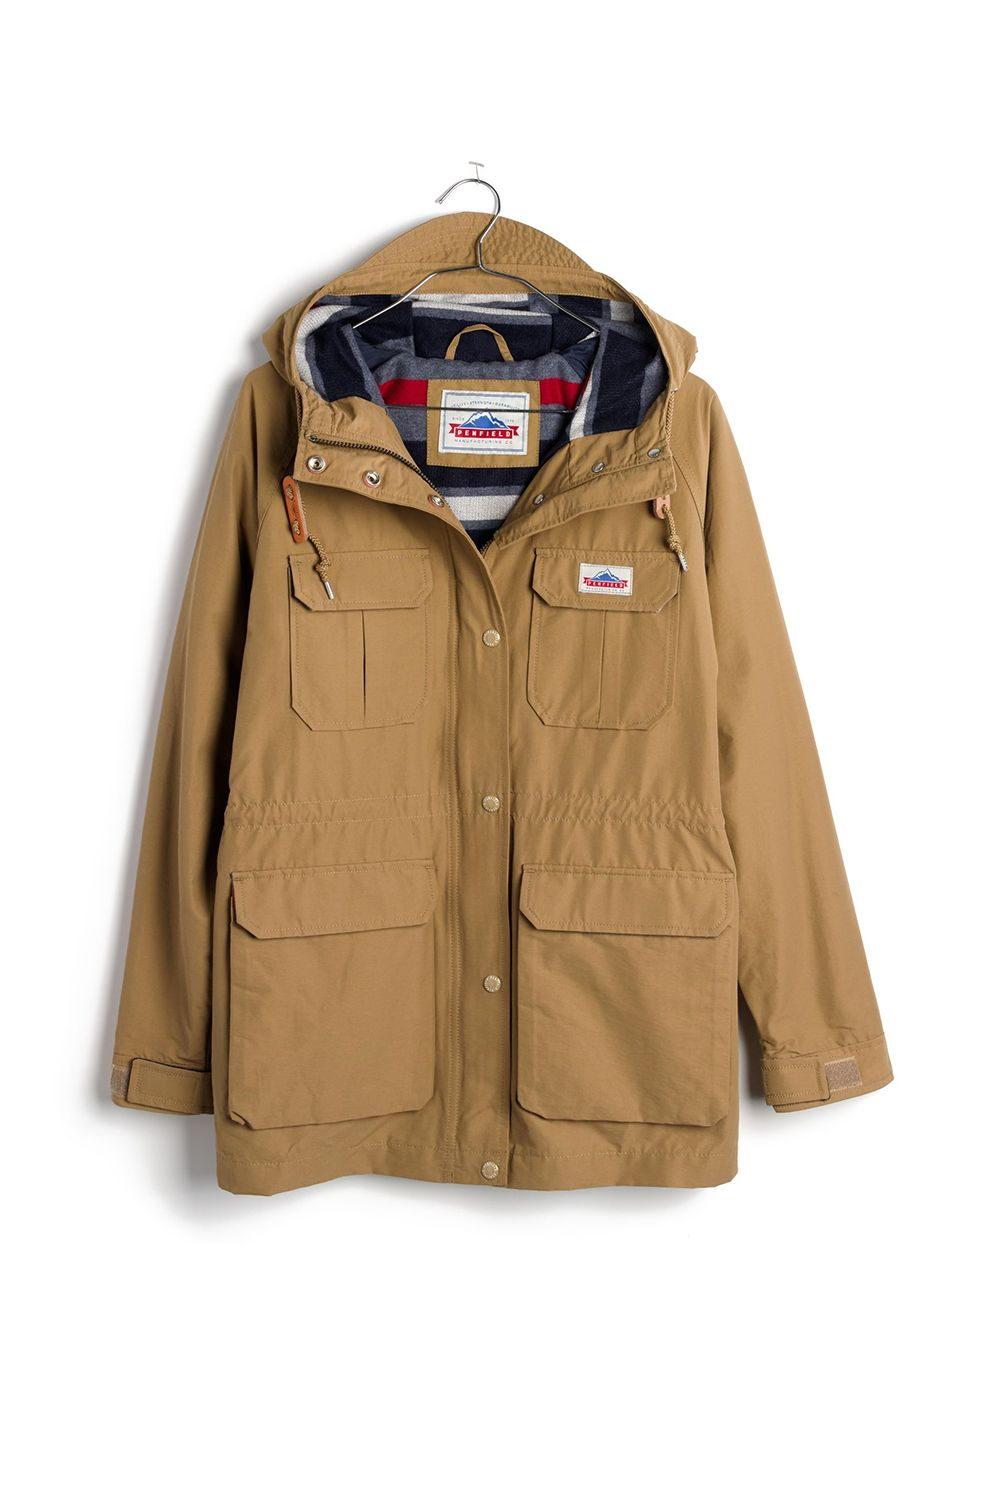 """<p>This Madewell collab with Penfield (a Massachusetts-based company that makes legit outdoor goodies) produced pretty much the perfect Parka: a heritage-inspired pick with fleece-lined pockets and a bold striped lining that looks good on and off a trail.&nbsp&#x3B;</p><p><strong data-redactor-tag=""""strong"""" data-verified=""""redactor"""">Madewell x Penfield Kasson Parka in Tan, $200&#x3B; </strong><a href=""""https://www.madewell.com/madewell_category/JACKETSANDOUTERWEAR/Jackets/PRDOVR~F5972/F5972.jsp"""" target=""""_blank"""" data-tracking-id=""""recirc-text-link""""><strong data-redactor-tag=""""strong"""" data-verified=""""redactor"""">madewell.com</strong></a></p>"""